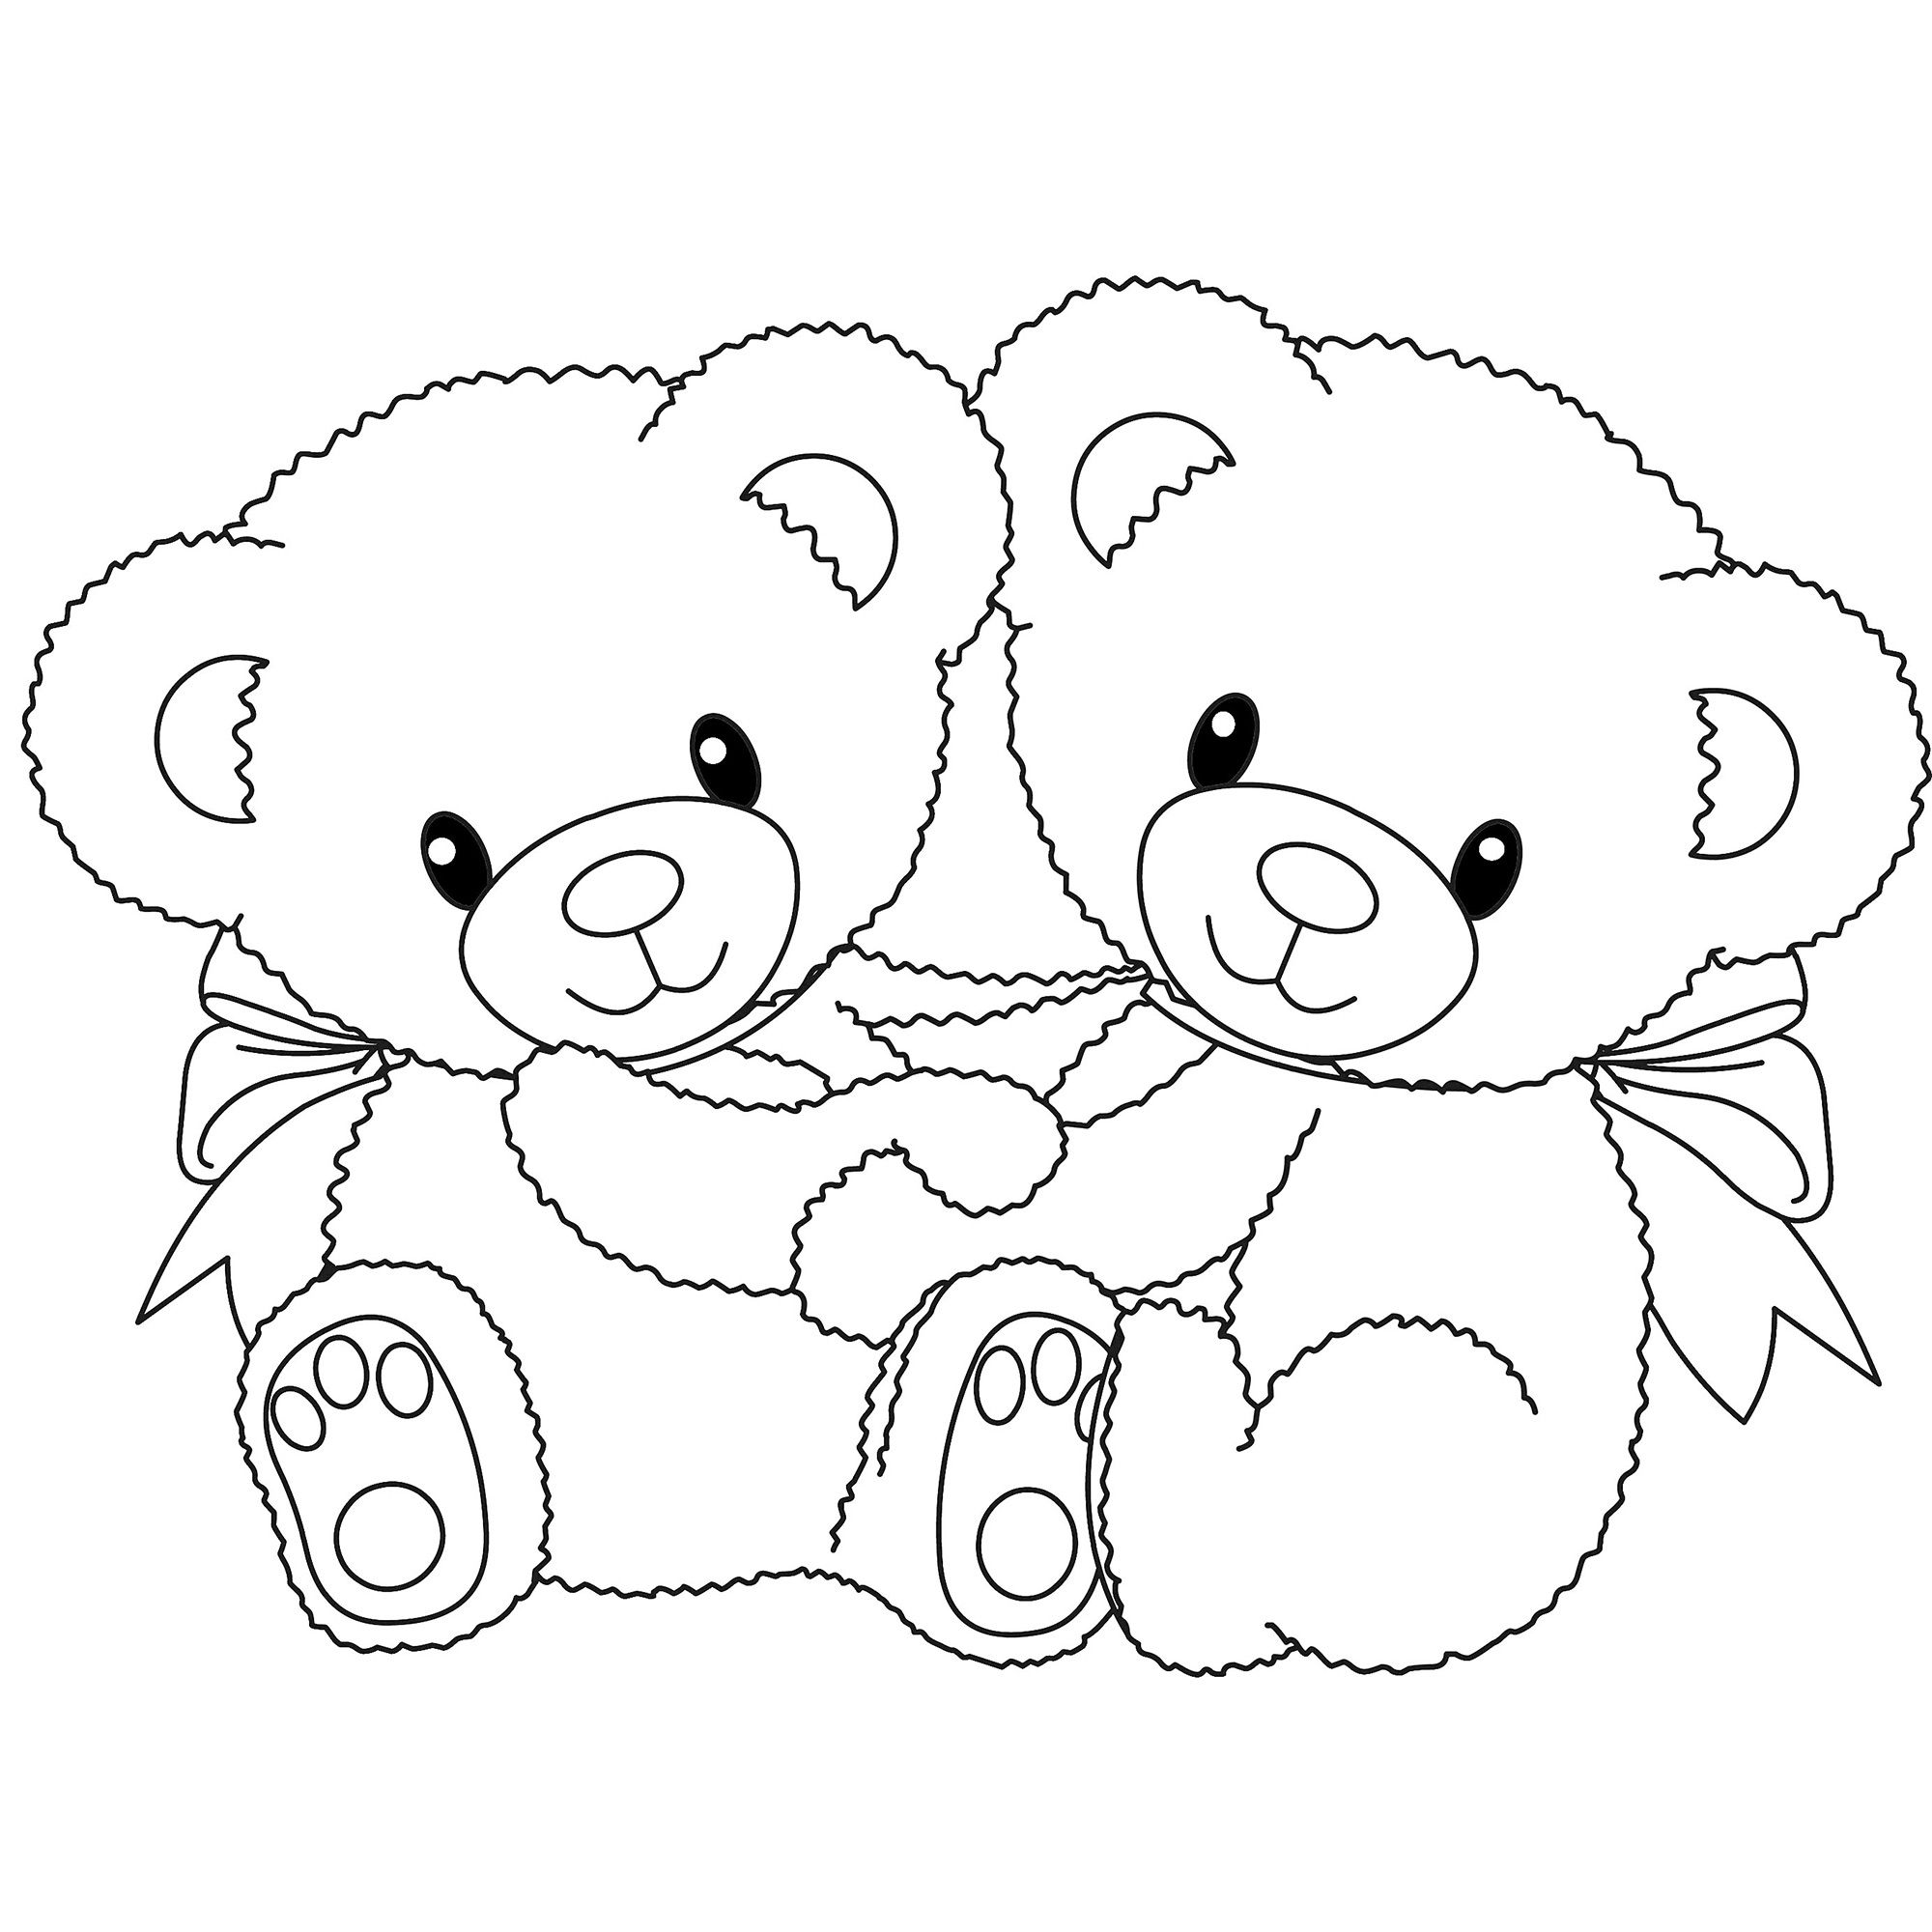 Teddy bear coloring pages free printable coloring pages | Fun ...